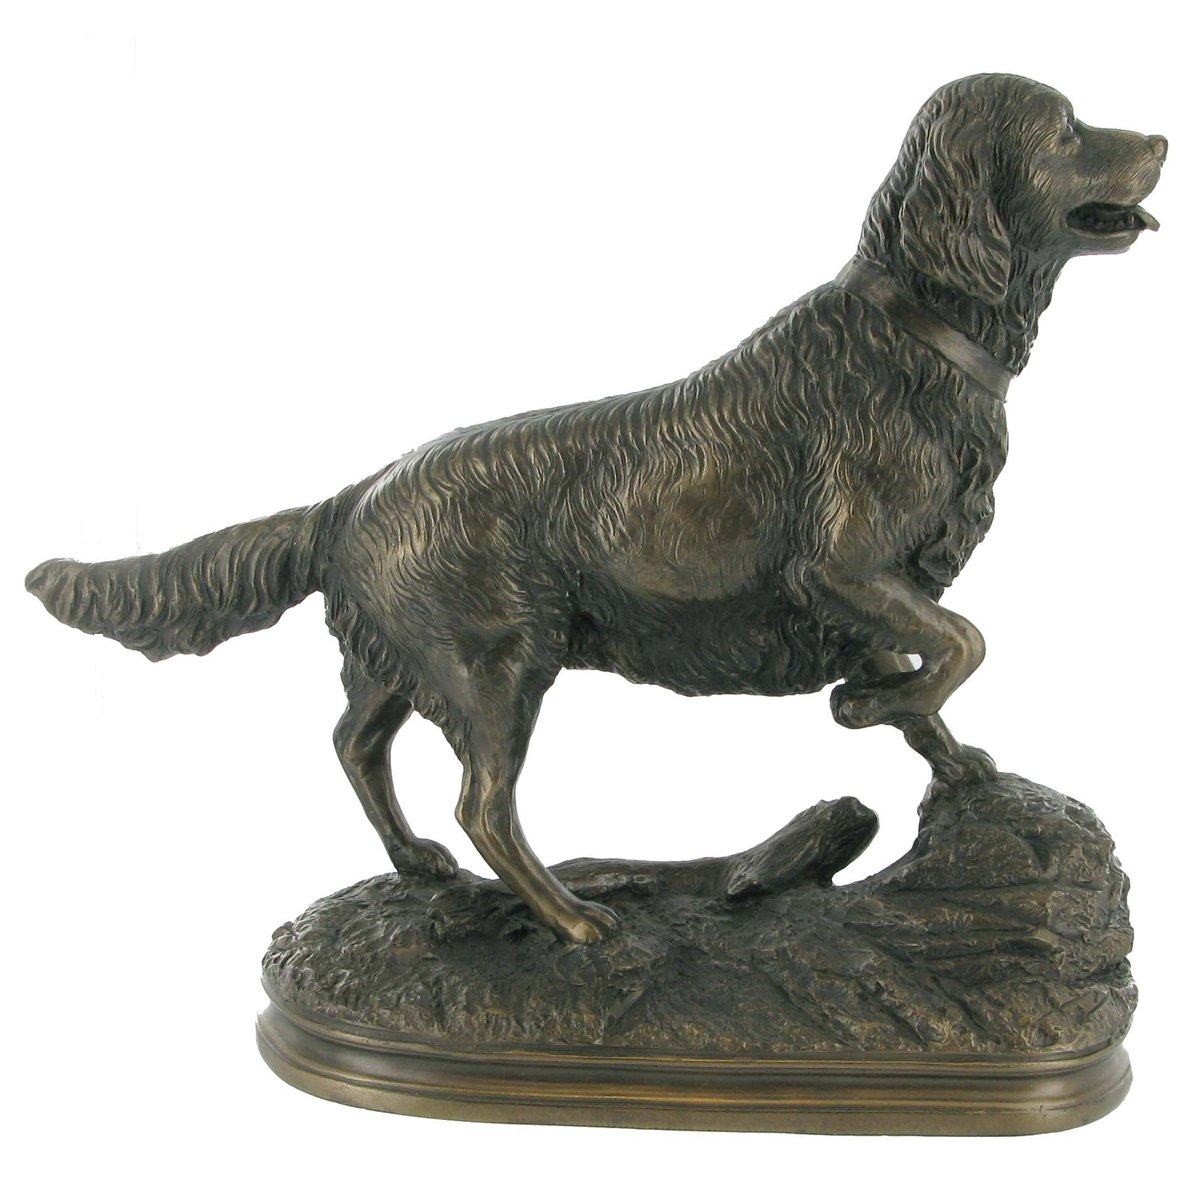 Cold Cast Bronze Standing Golden Retriever Dog Statue A Perfect Gift Idea  For Special